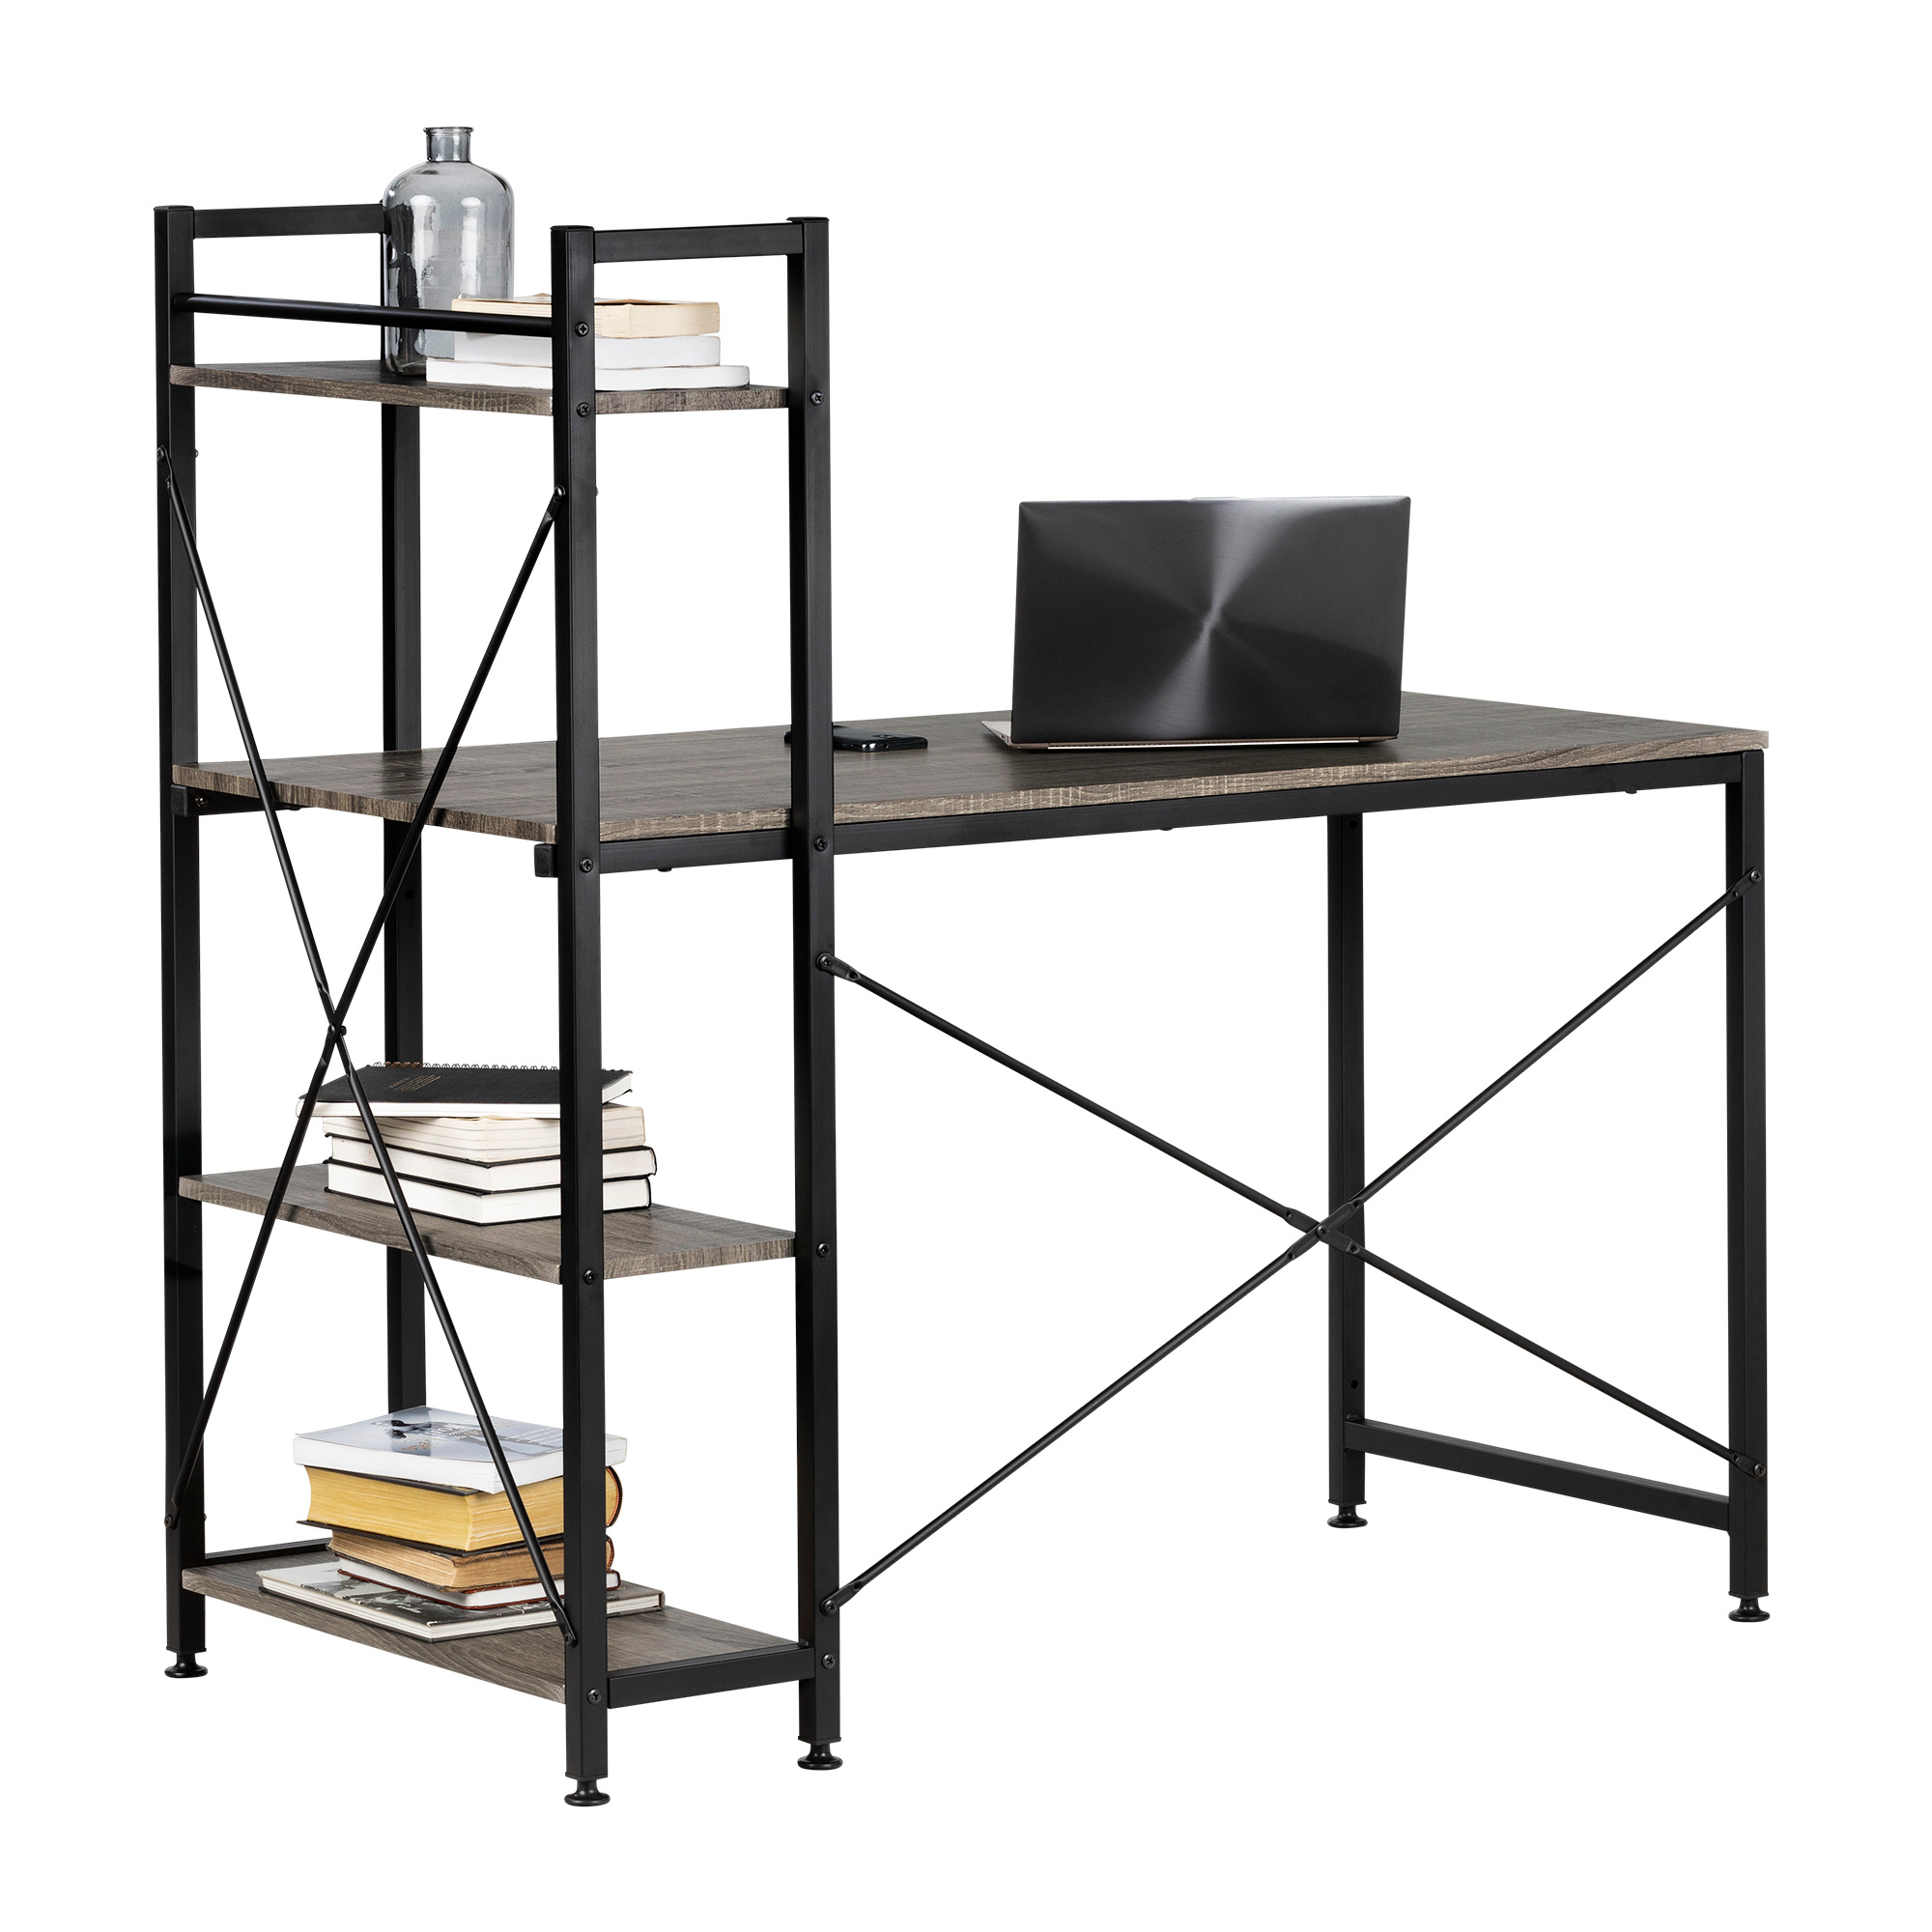 Evane Industrial Desk With Bookcase, Oak Camel – M2go With South Shore Evane Tv Stands With Doors In Oak Camel (View 14 of 20)